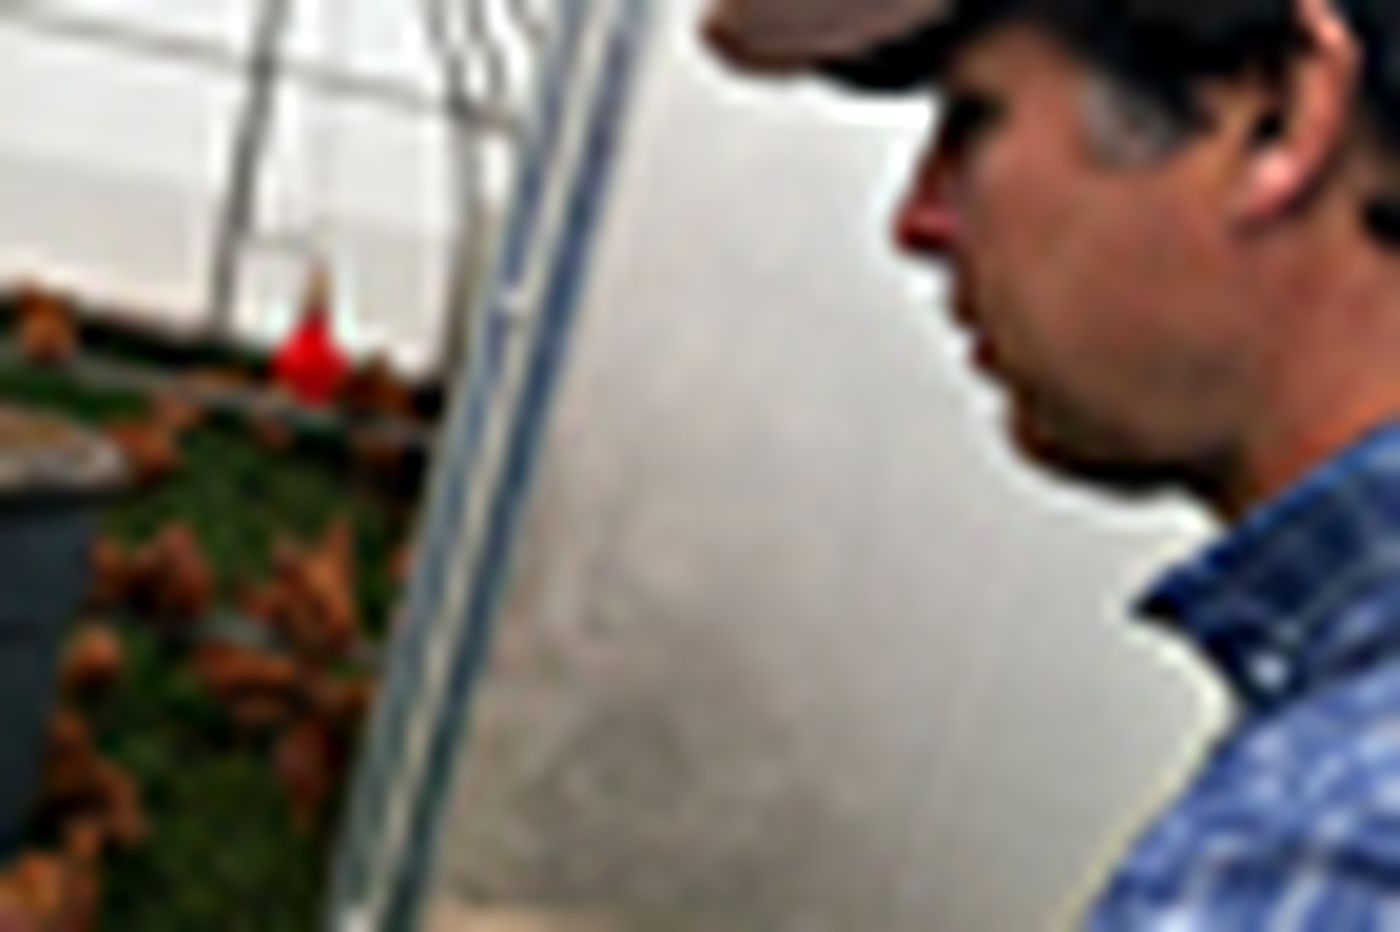 PhillyDeals: Ex-trader sees sustainable farming as good investment